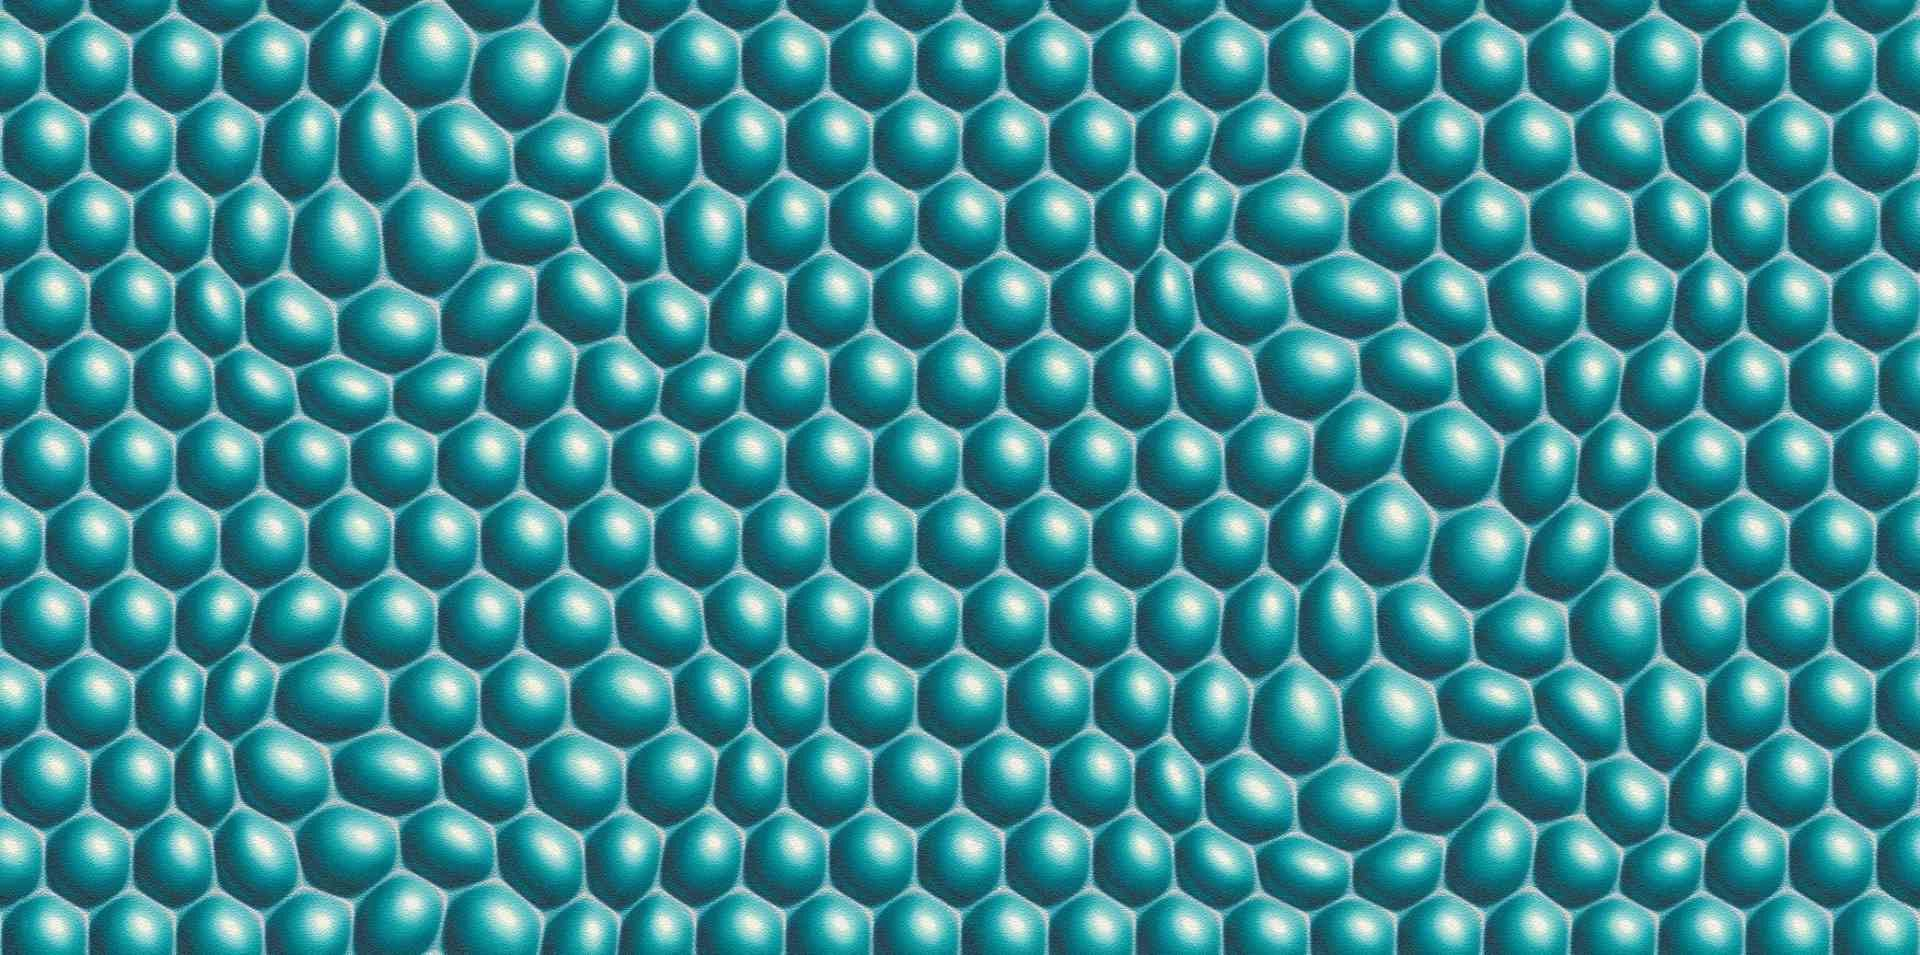 harmony in motion young and contemporary abstarct geometric 3d designs wall paper blue grey metallic 327204